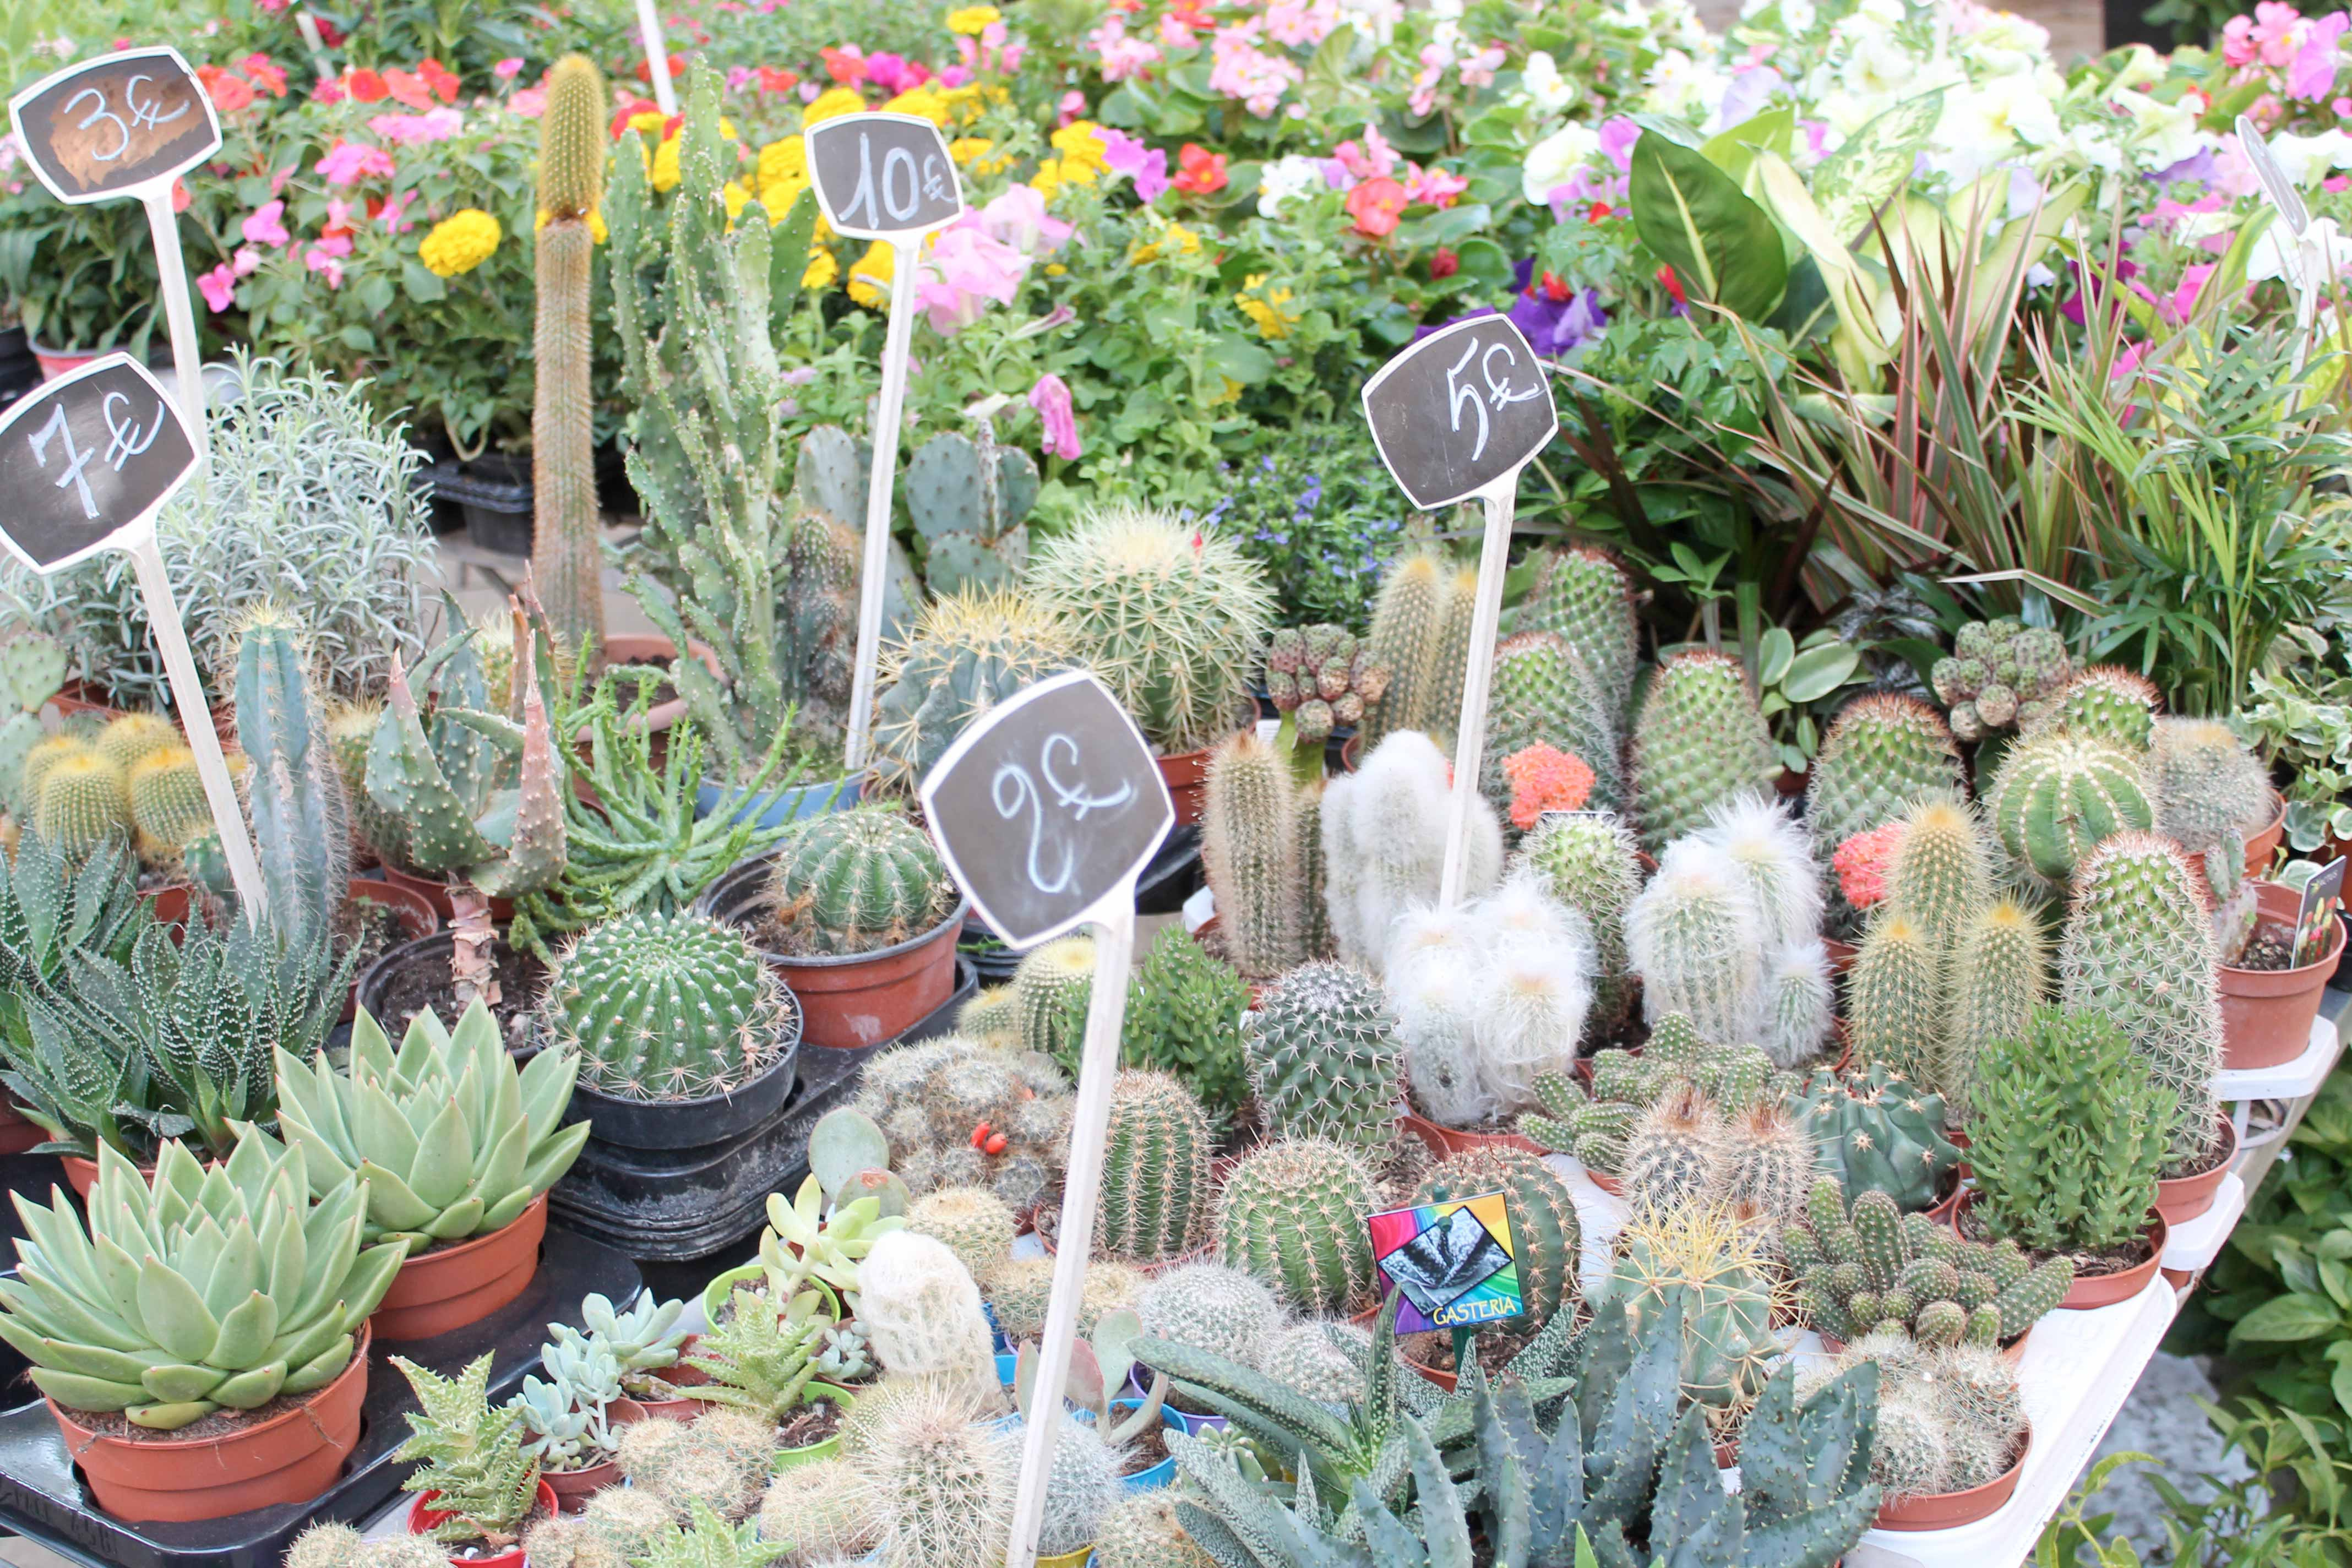 Shore excursion, cactus stall, Aix en Provence